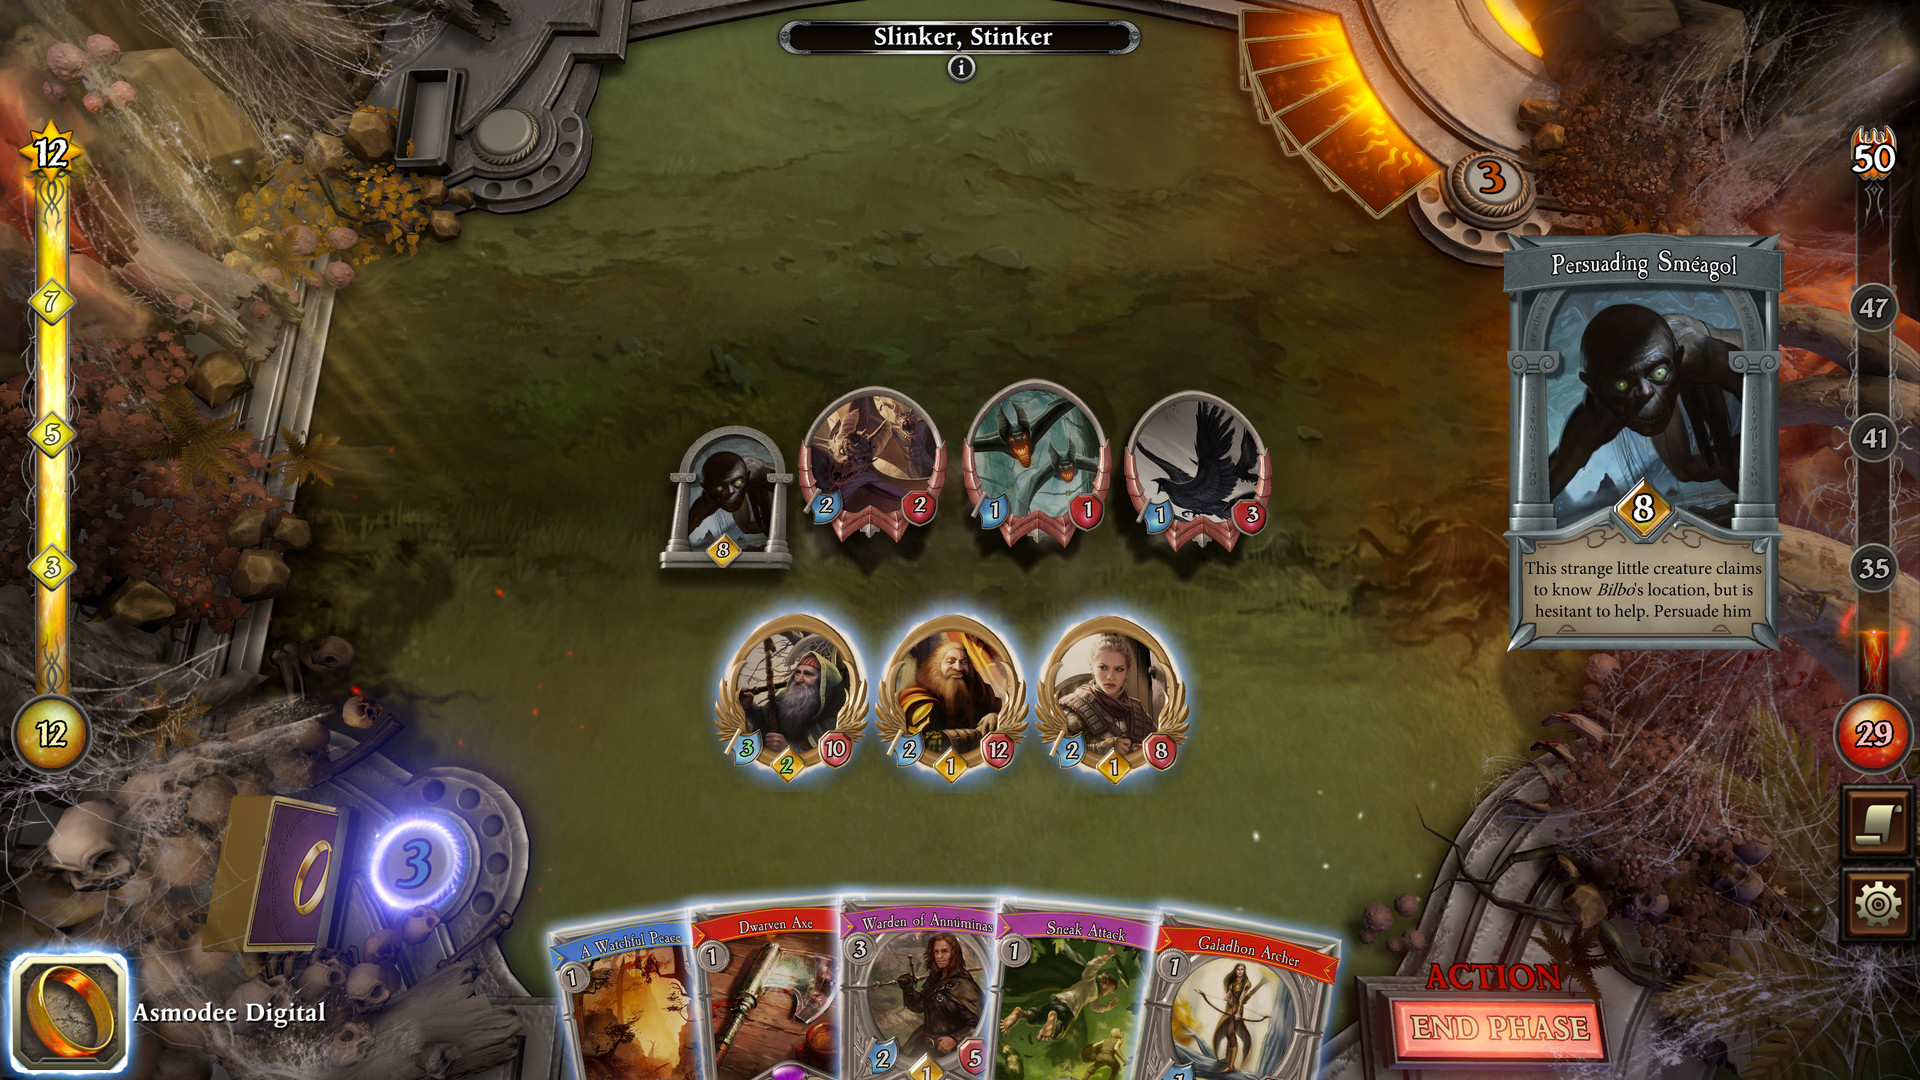 The Lord of the Rings: Adventure Card Game Nintendo Switch review